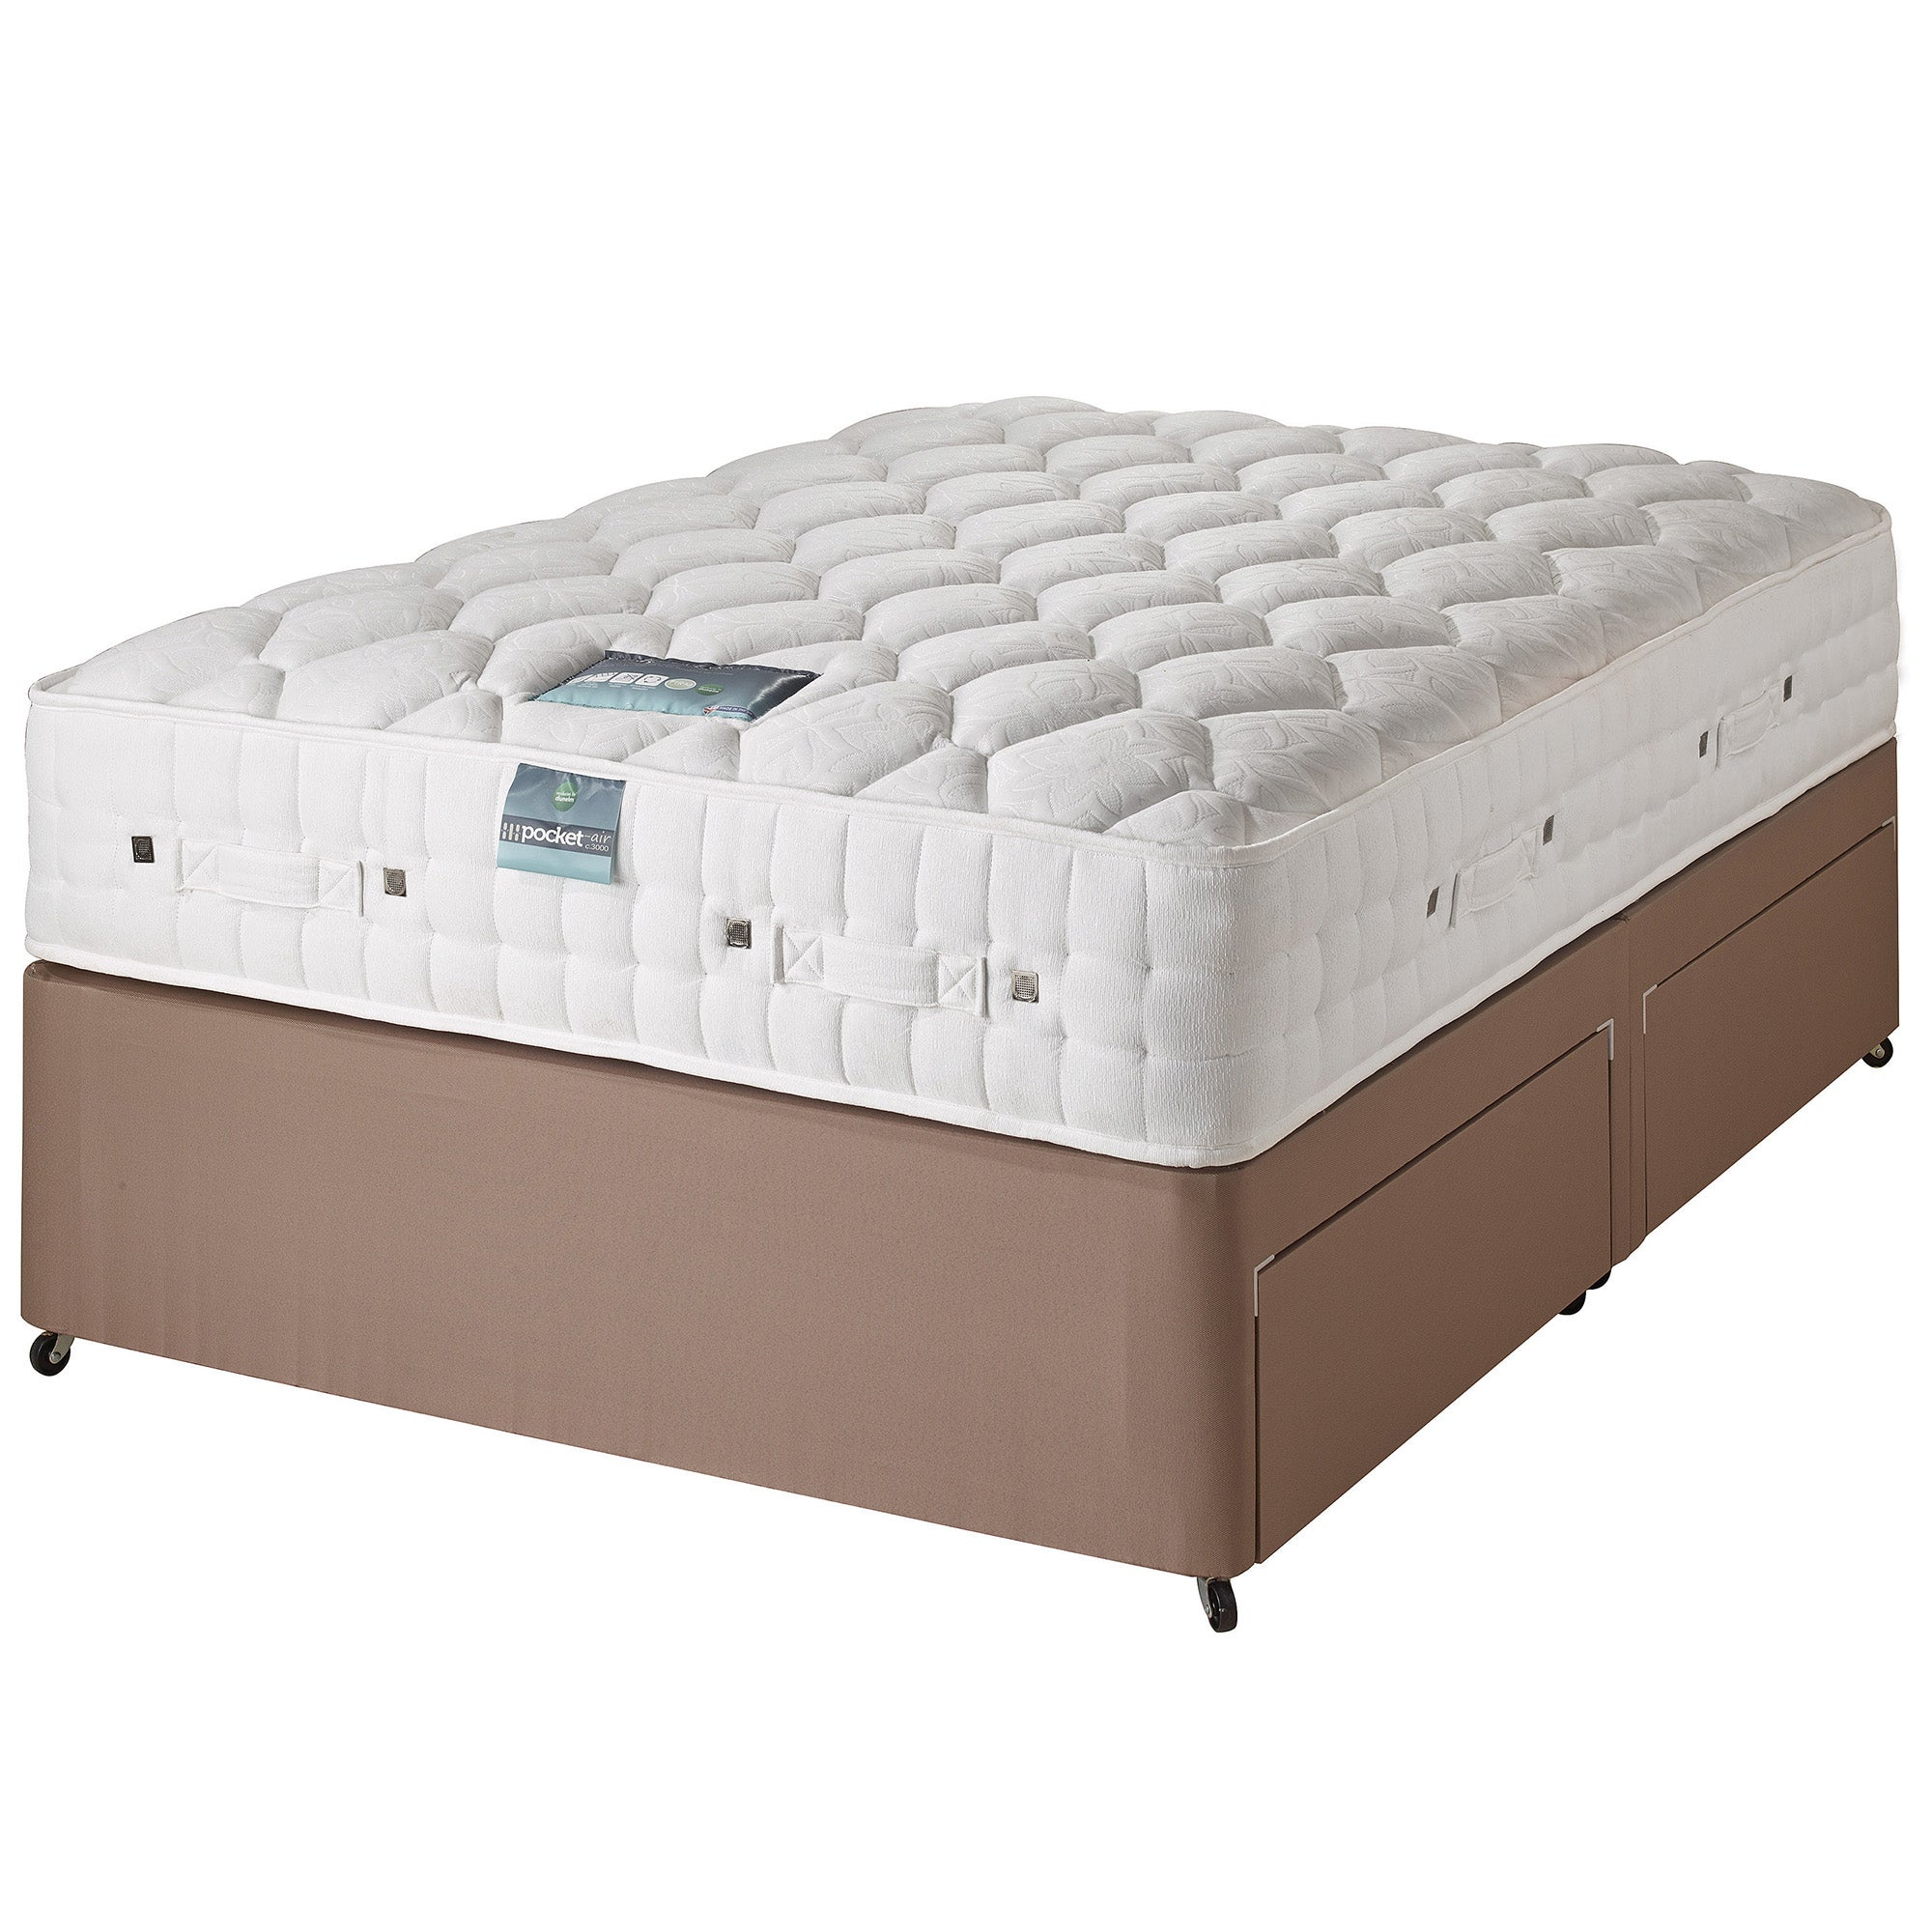 Blenheim 3000 Mattress and Divan Collection